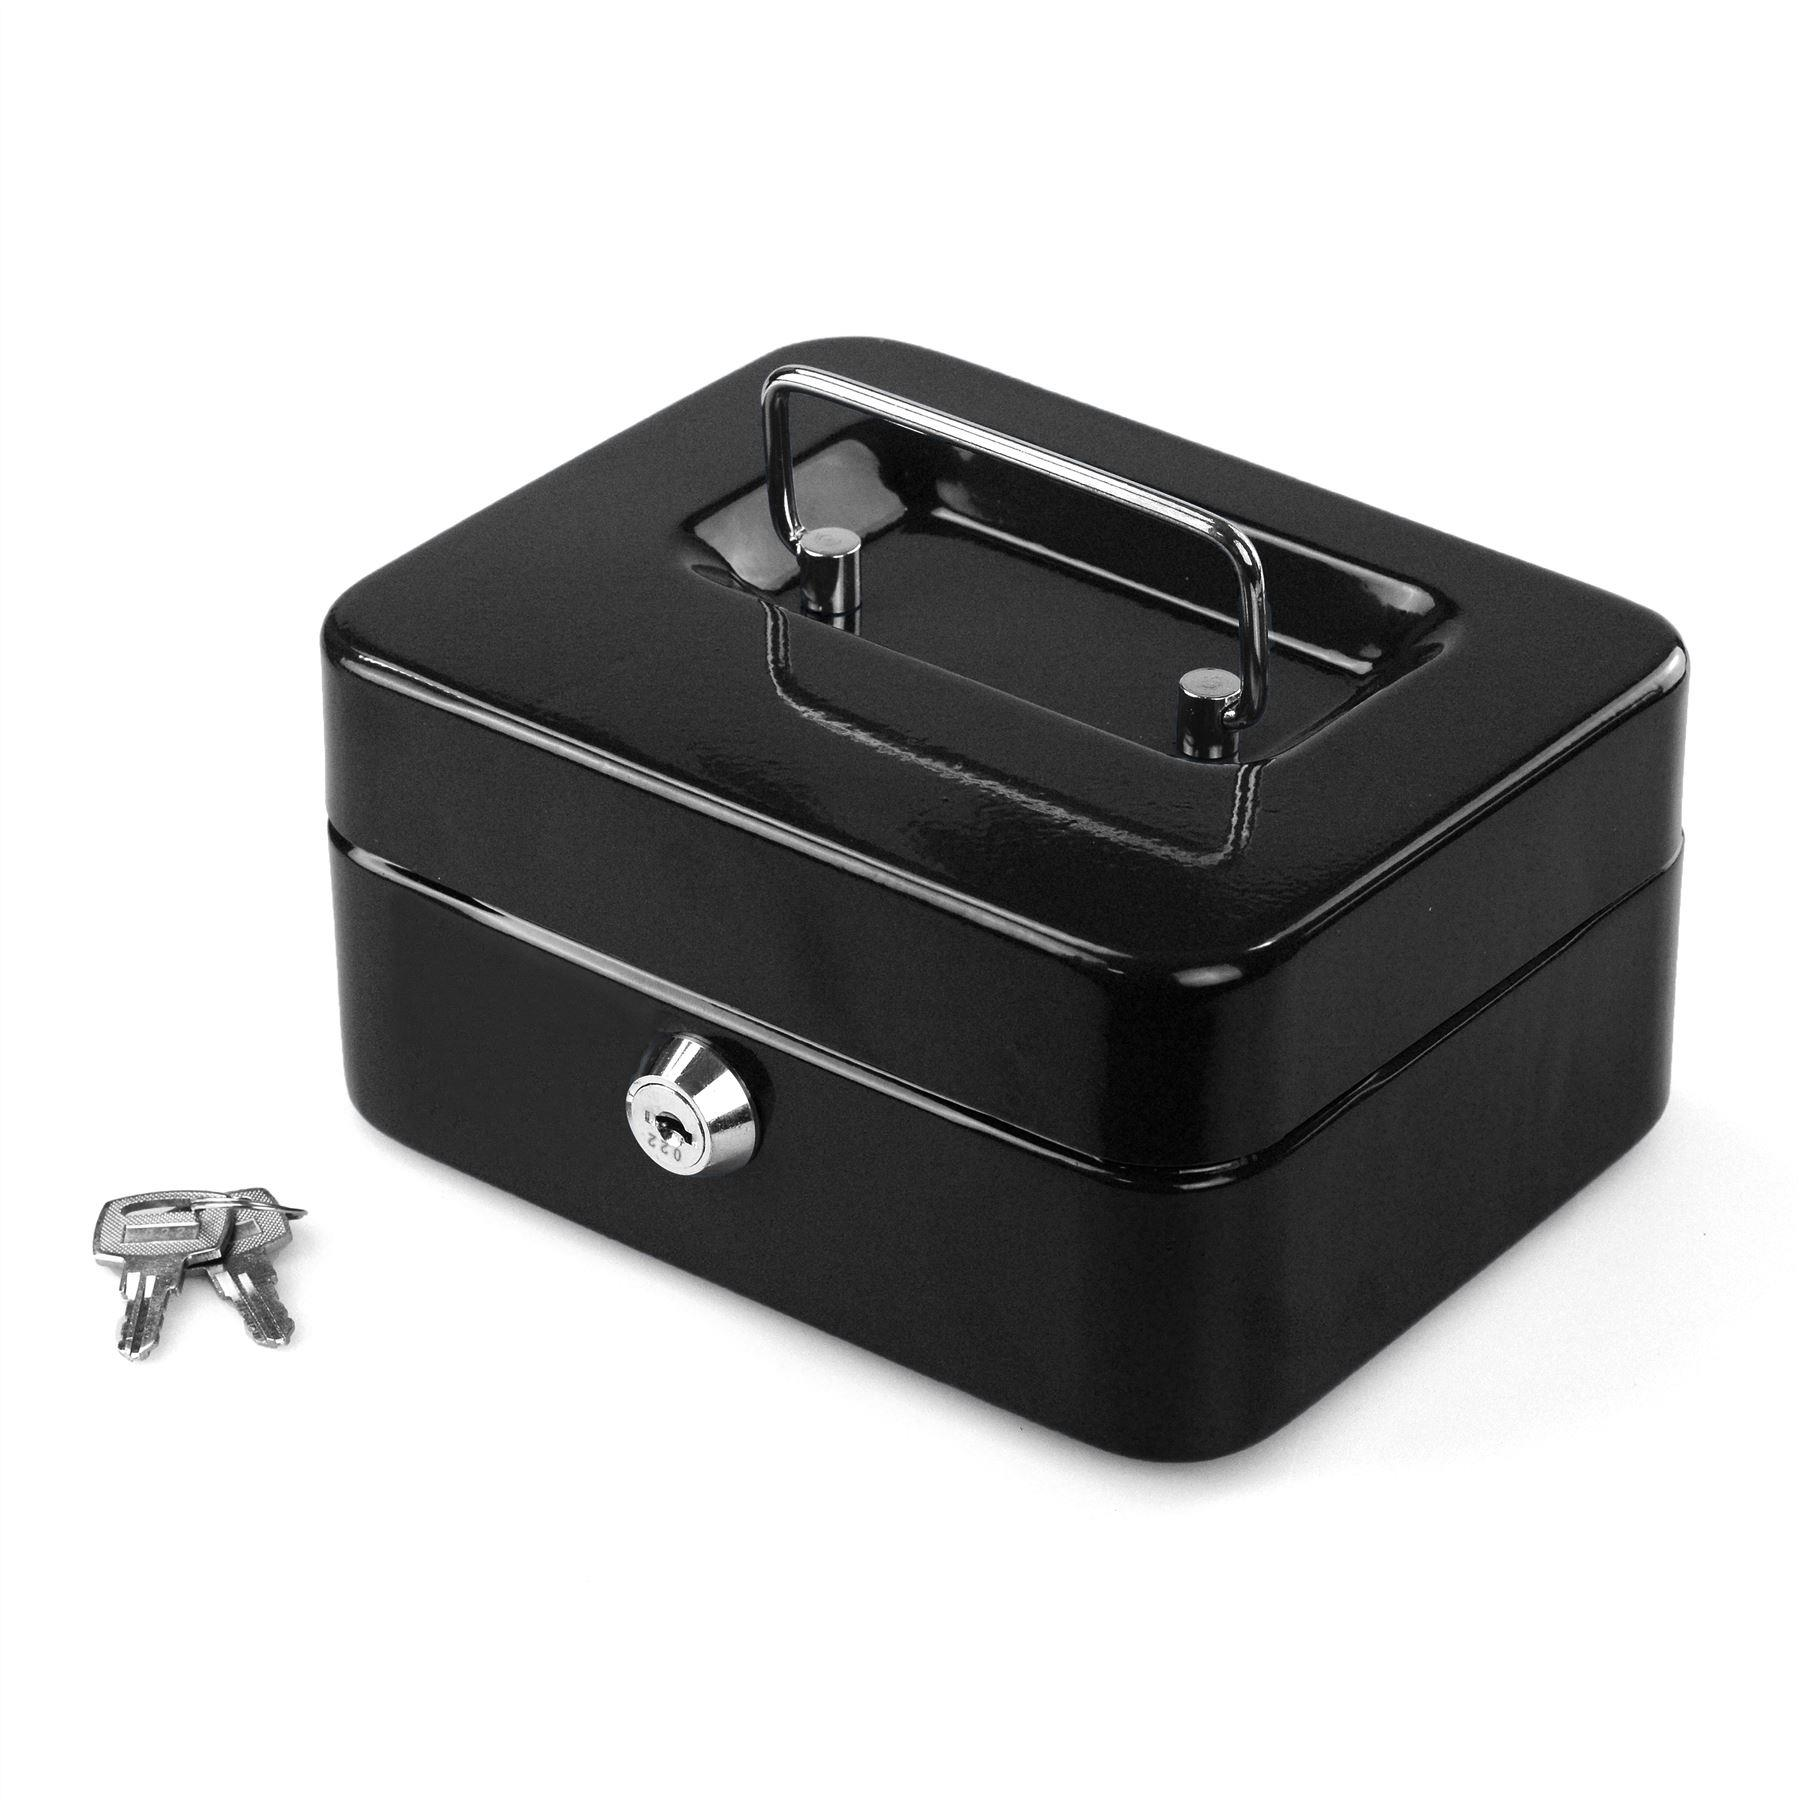 Petty-Cash-Safety-Deposit-Box-Metal-Security-Steel-Money-Bank-Coin-Tray-holder thumbnail 6